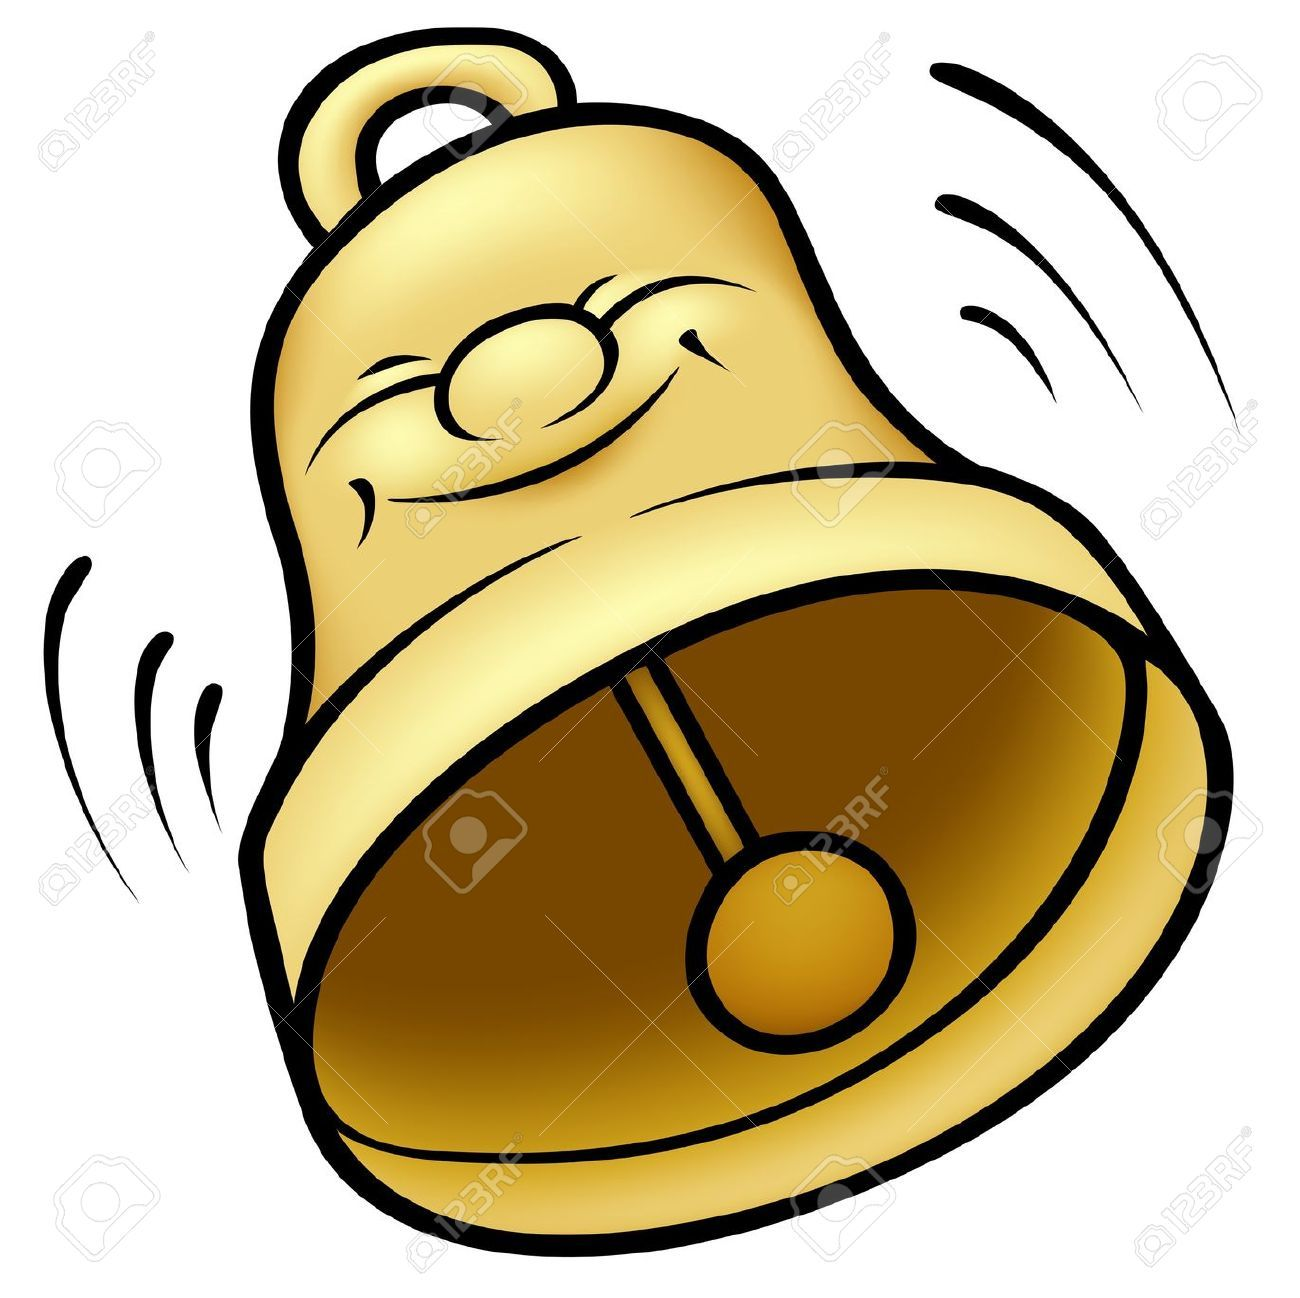 Bell ringing clipart image free stock School bell ringing clipart 5 » Clipart Portal image free stock